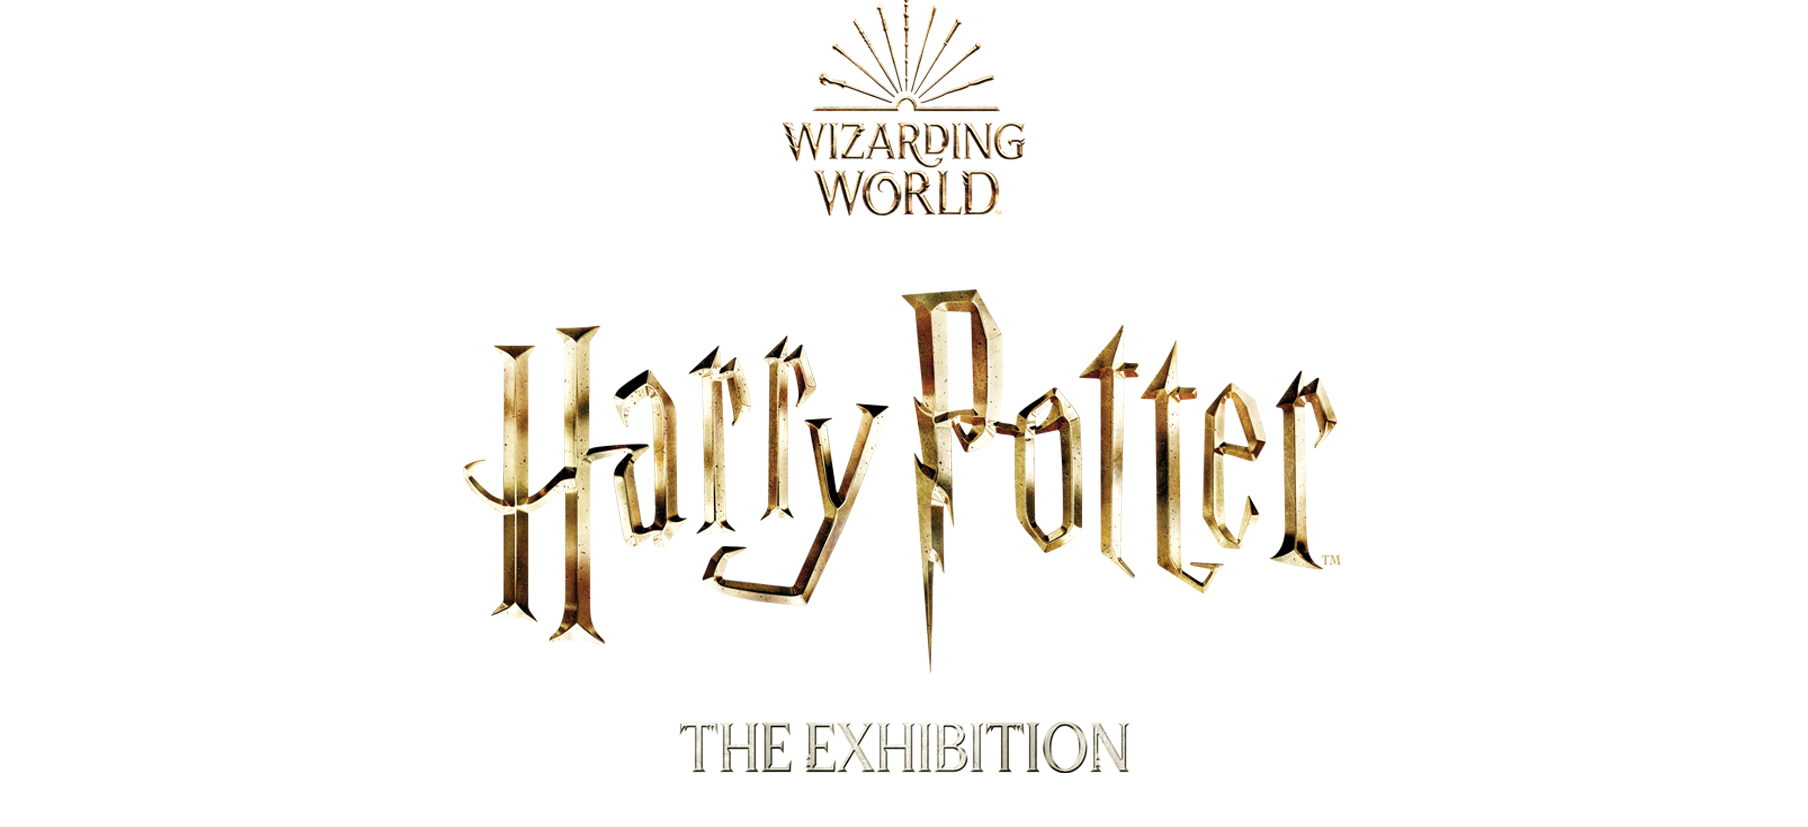 Harry Potter: The Exhibition Logo image